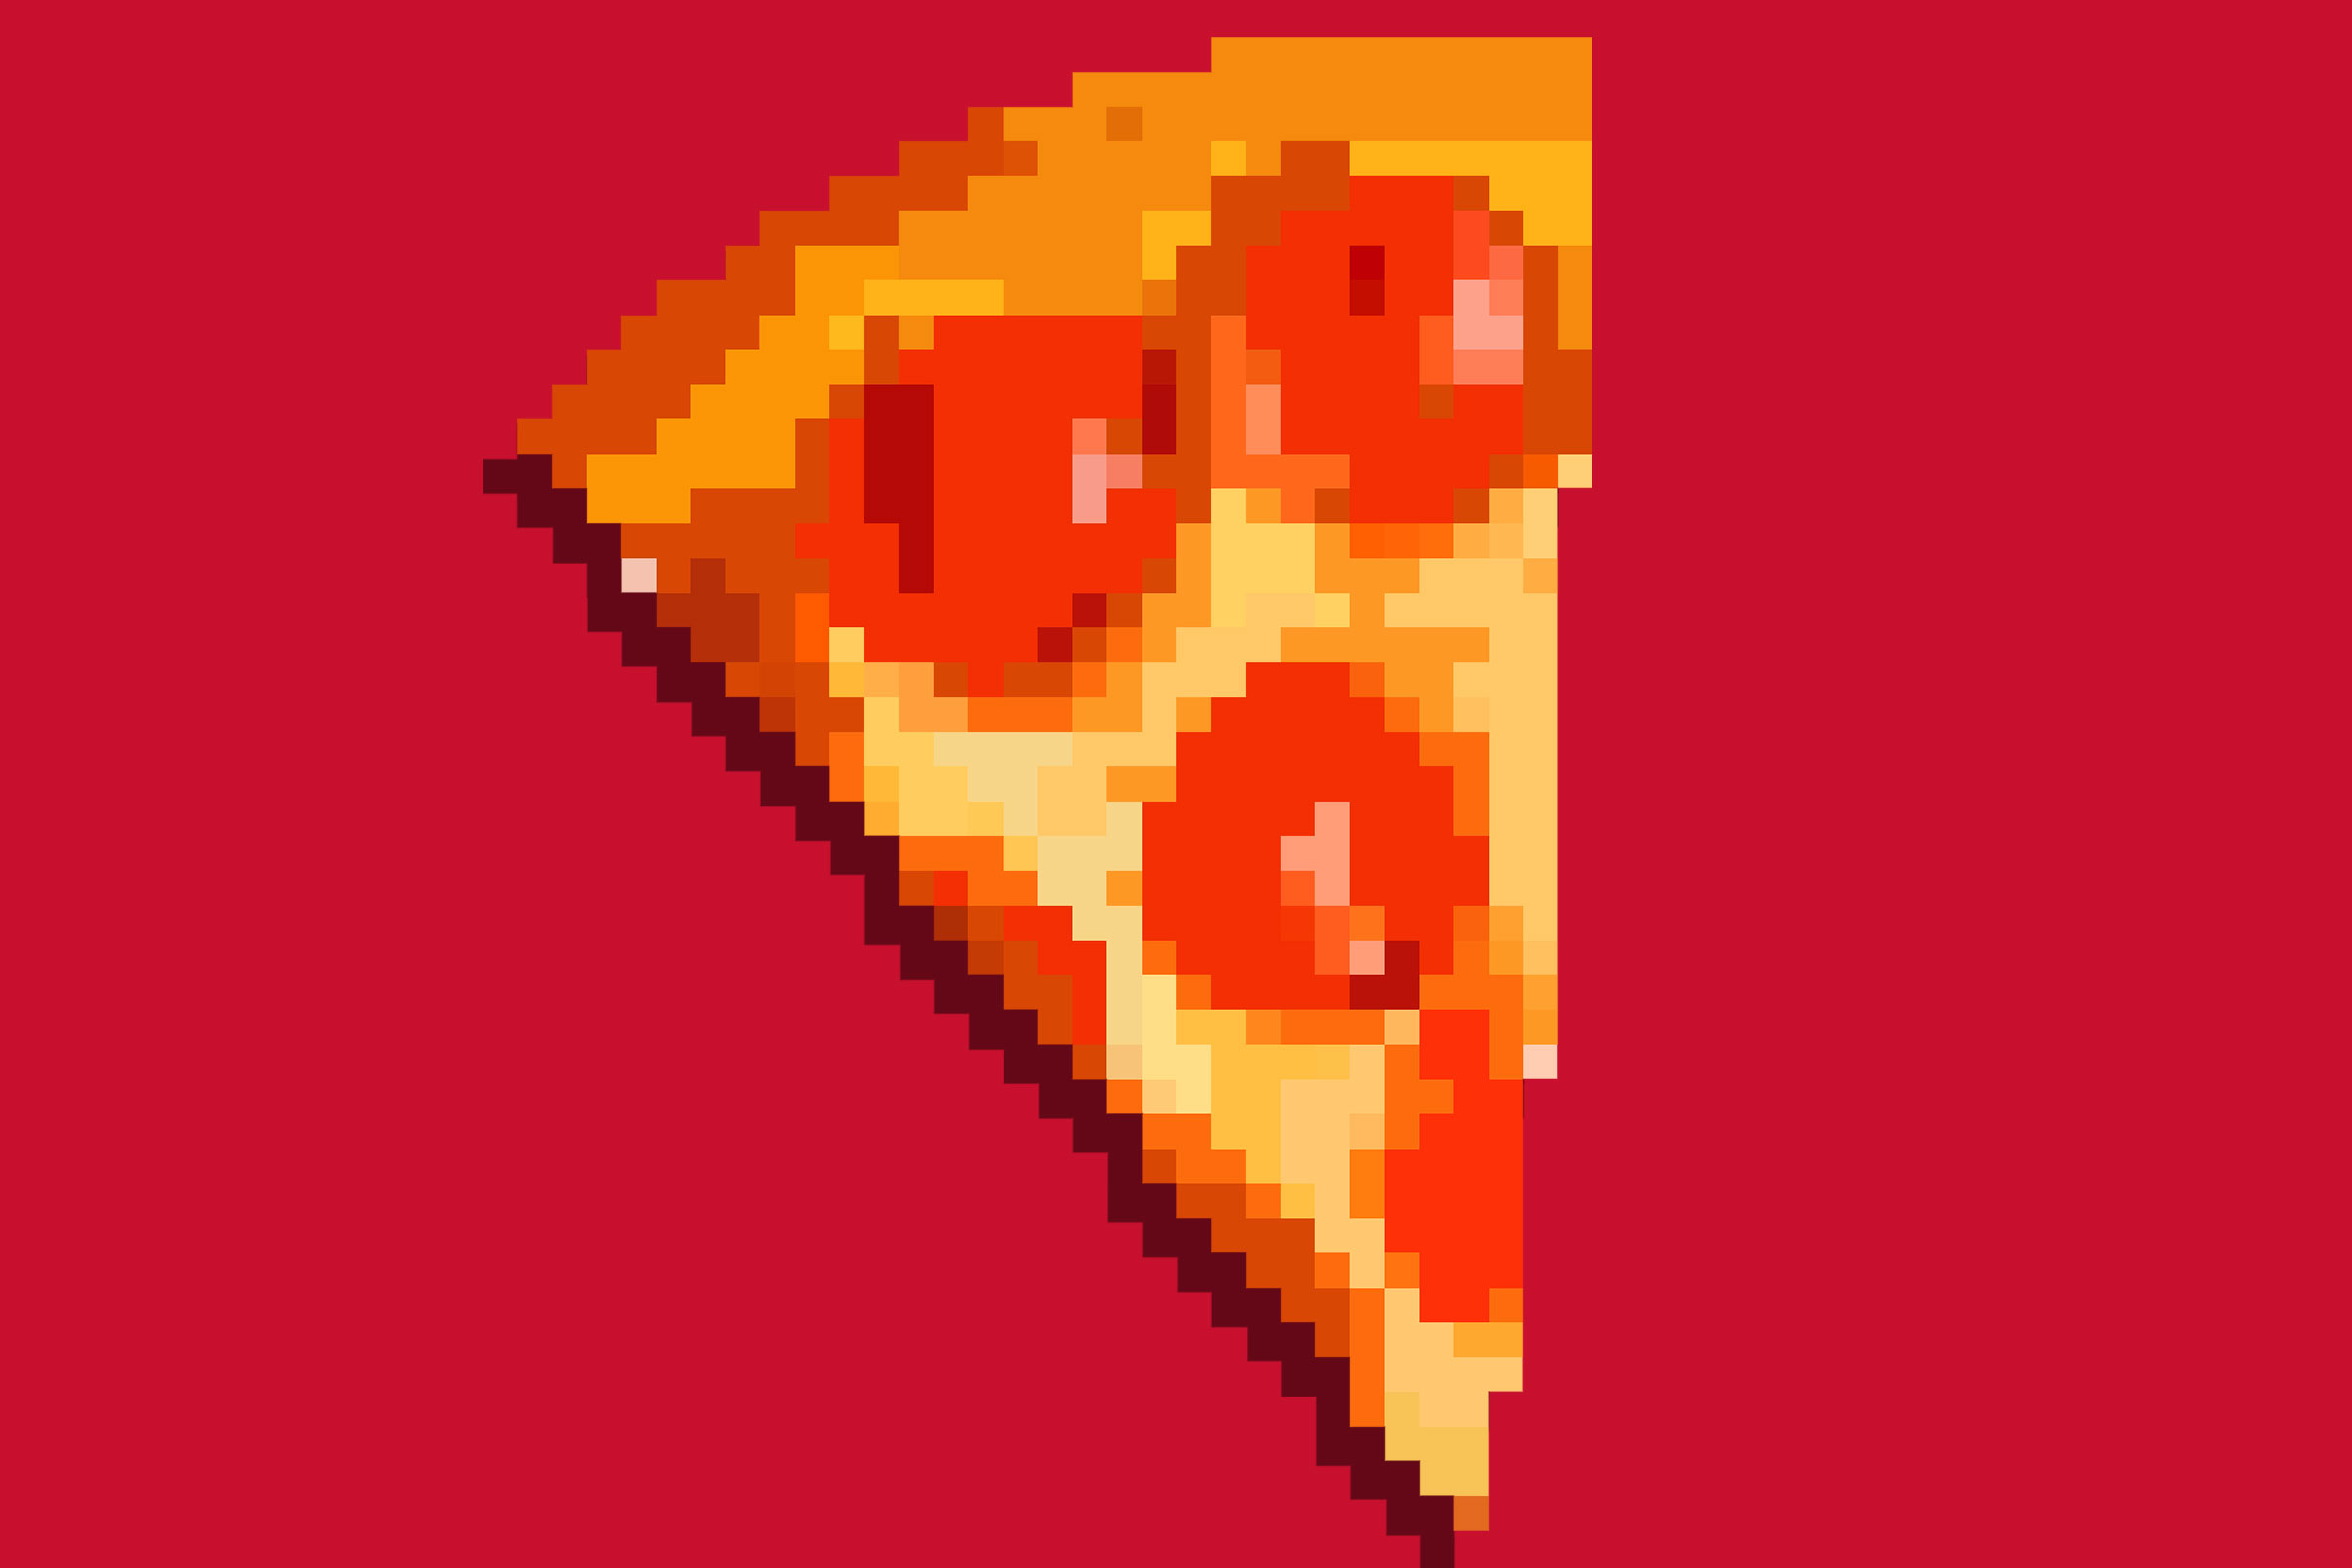 Pizza Hut's NFT promotion shows market still bubbling with pixelated pizza listed for $8,824.07